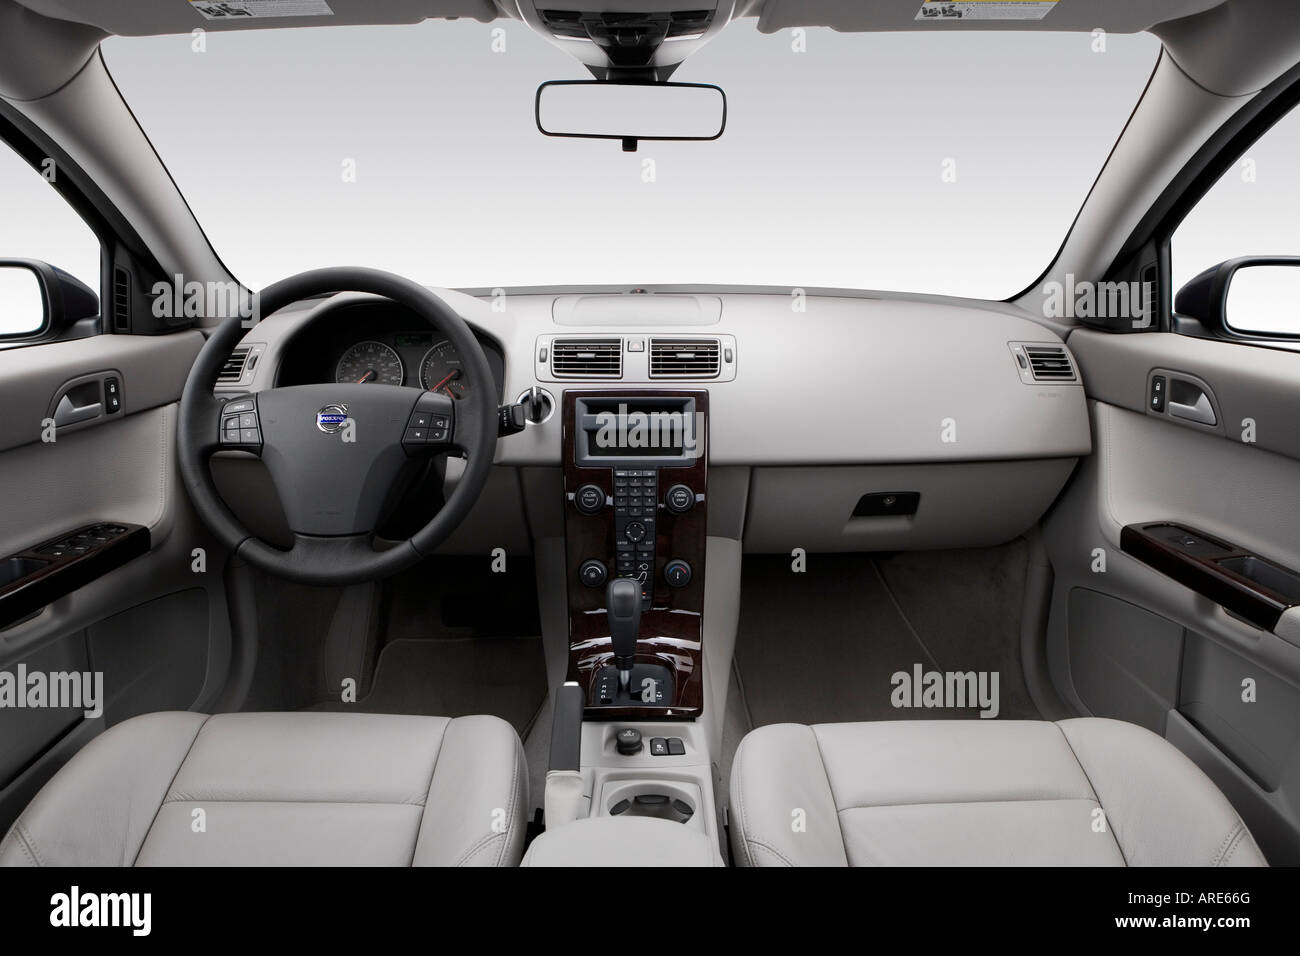 hight resolution of 2006 volvo s40 2 4 in blue dashboard center console gear shifter view